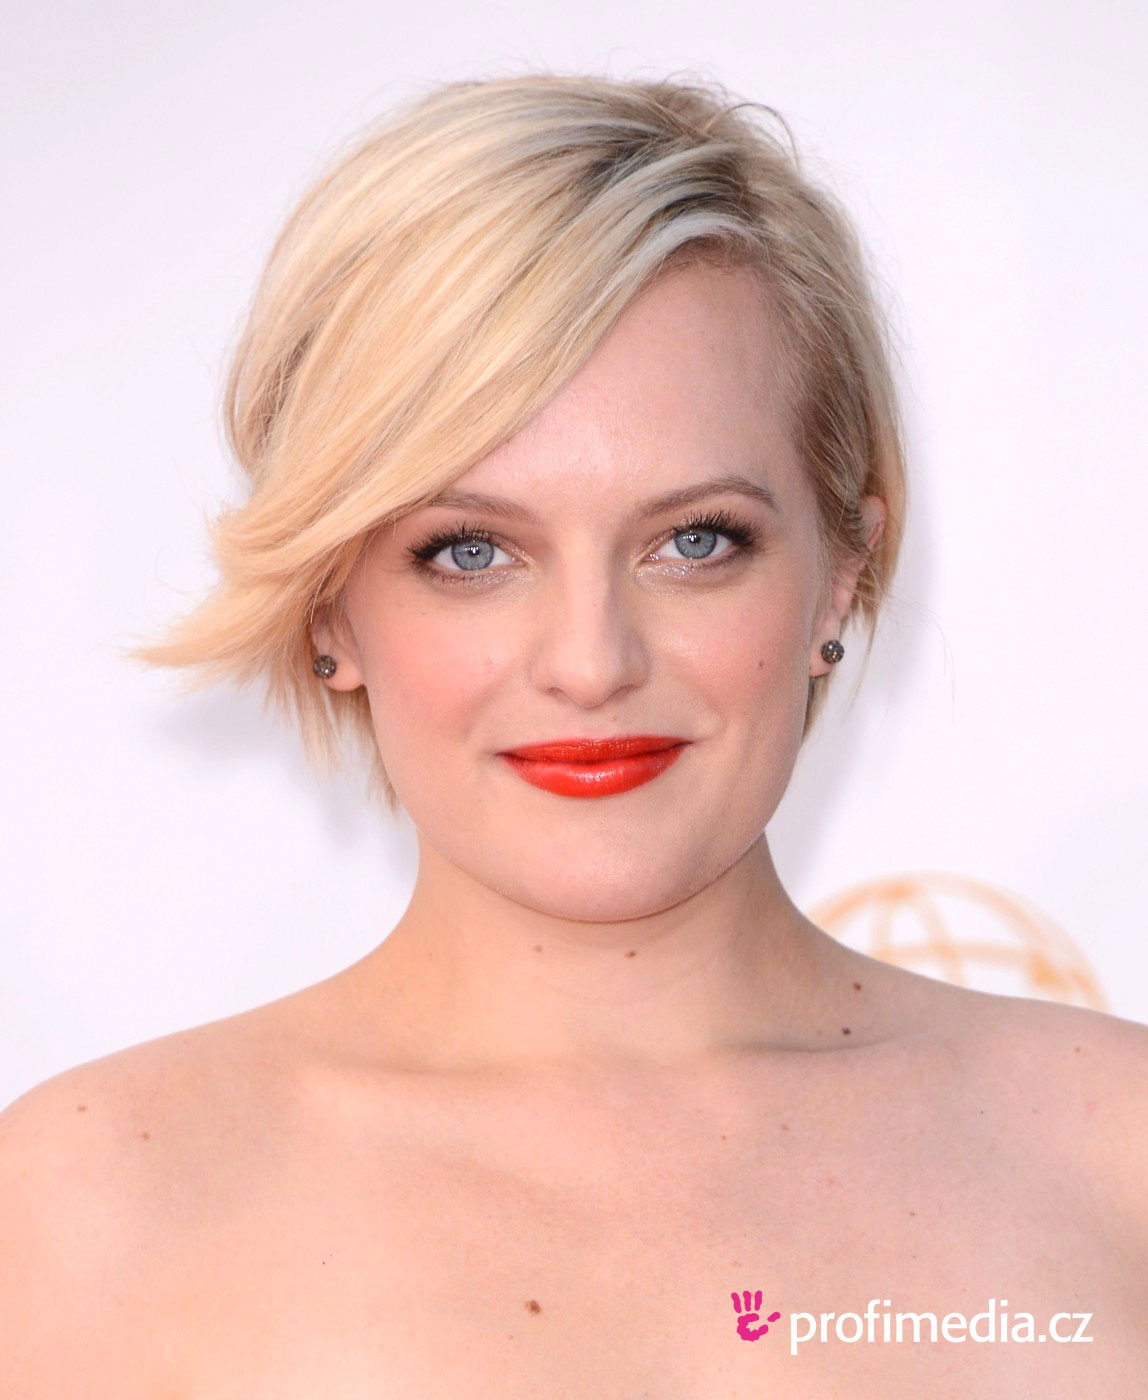 Prom hairstyle elizabeth moss elizabeth moss Prom hairstyle updo pin curly hair tutorial classic prom hairstyle